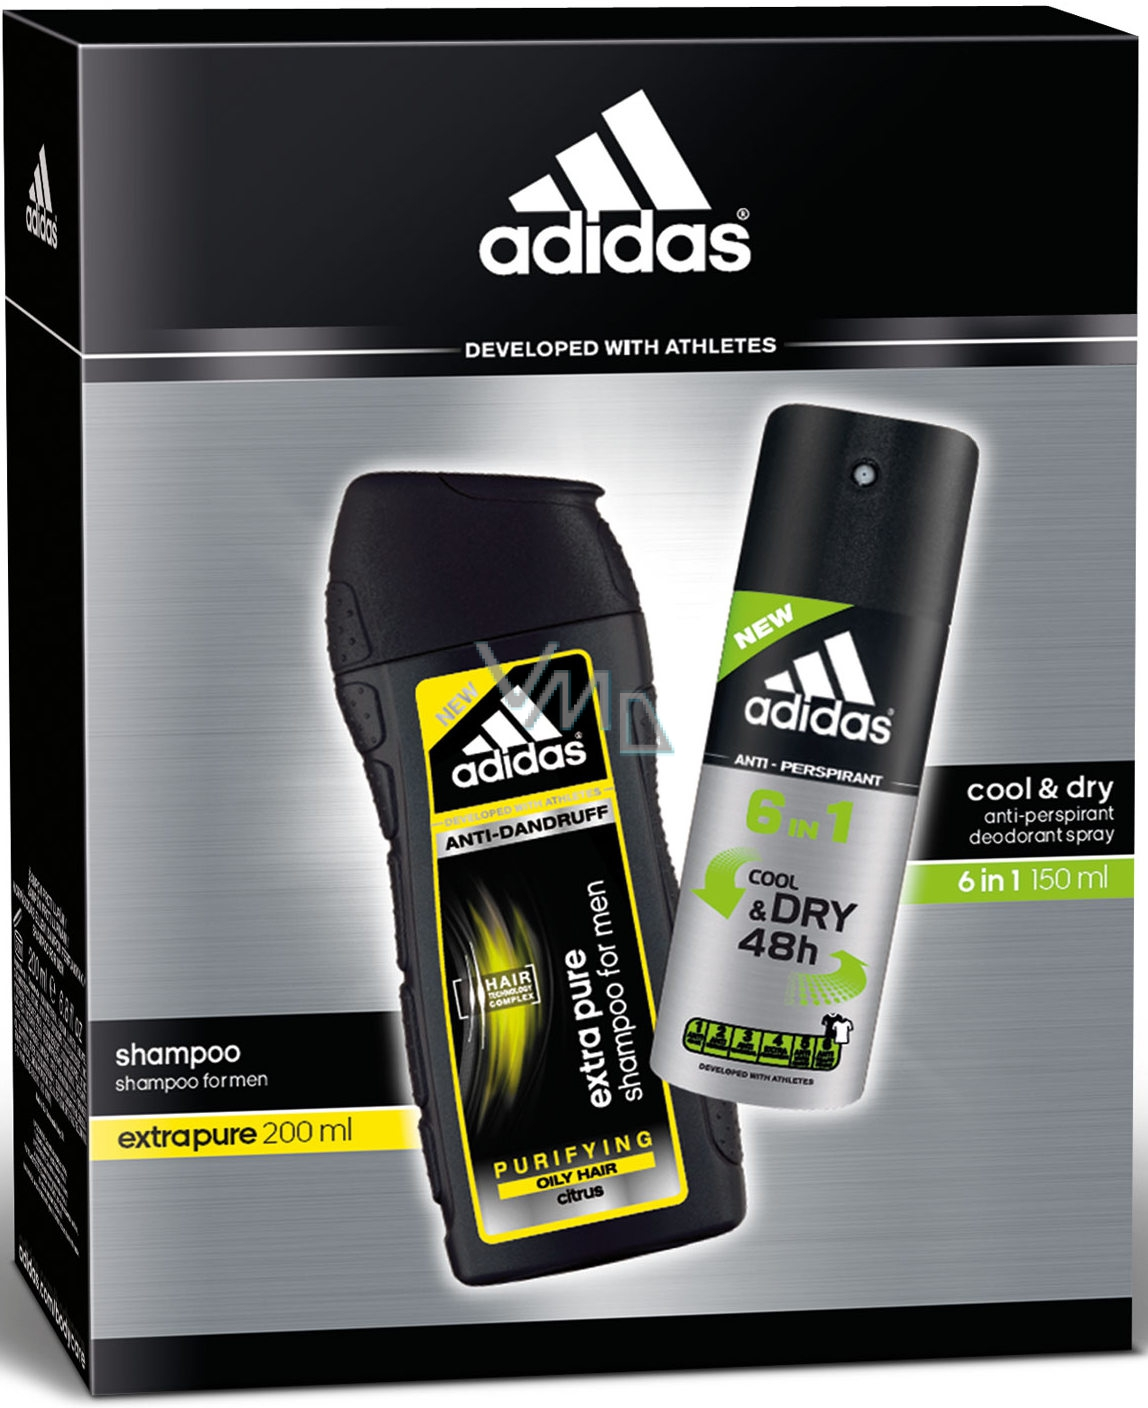 Adidas Cool & Dry 48h 6in1 antiperspirant deodorant spray